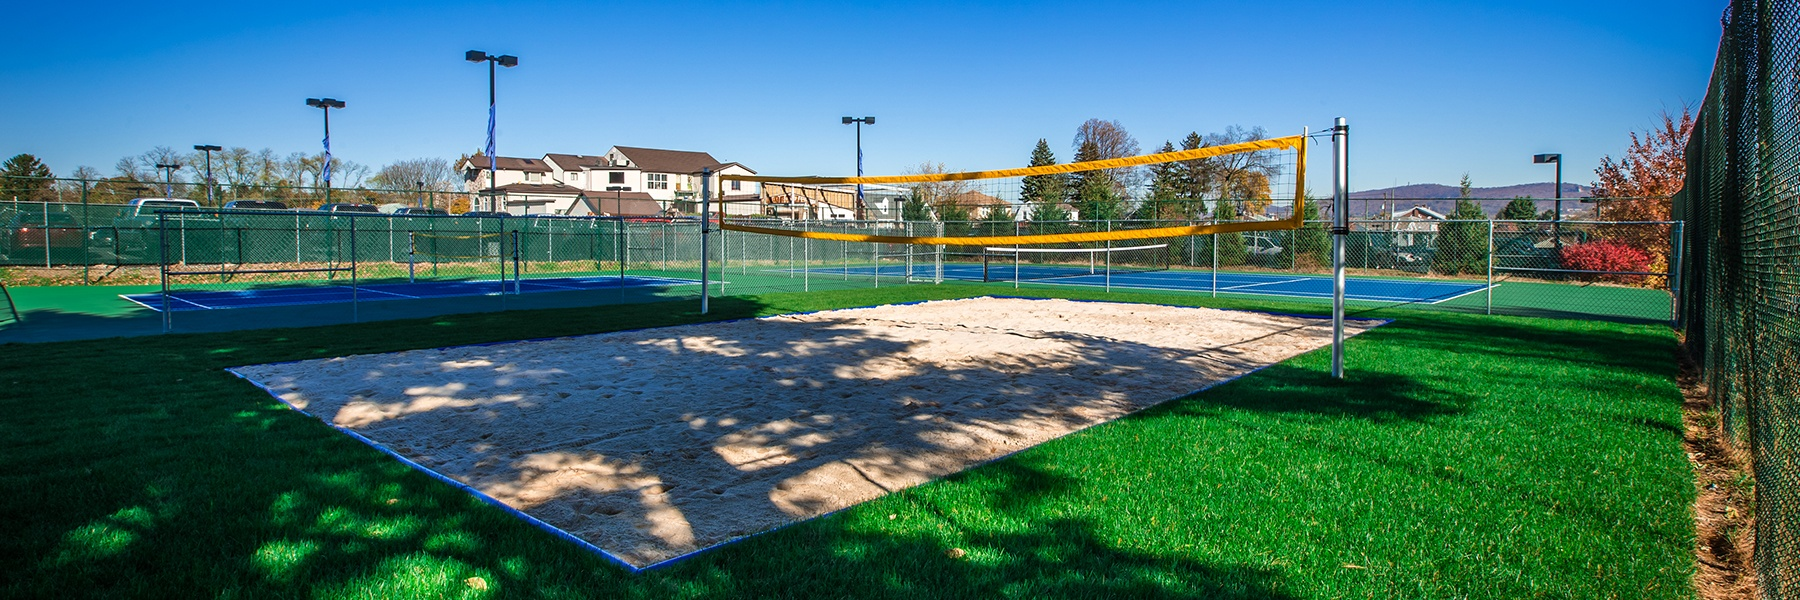 Shillington Commons Apartments For Rent in Shillington, PA Volleyball Court